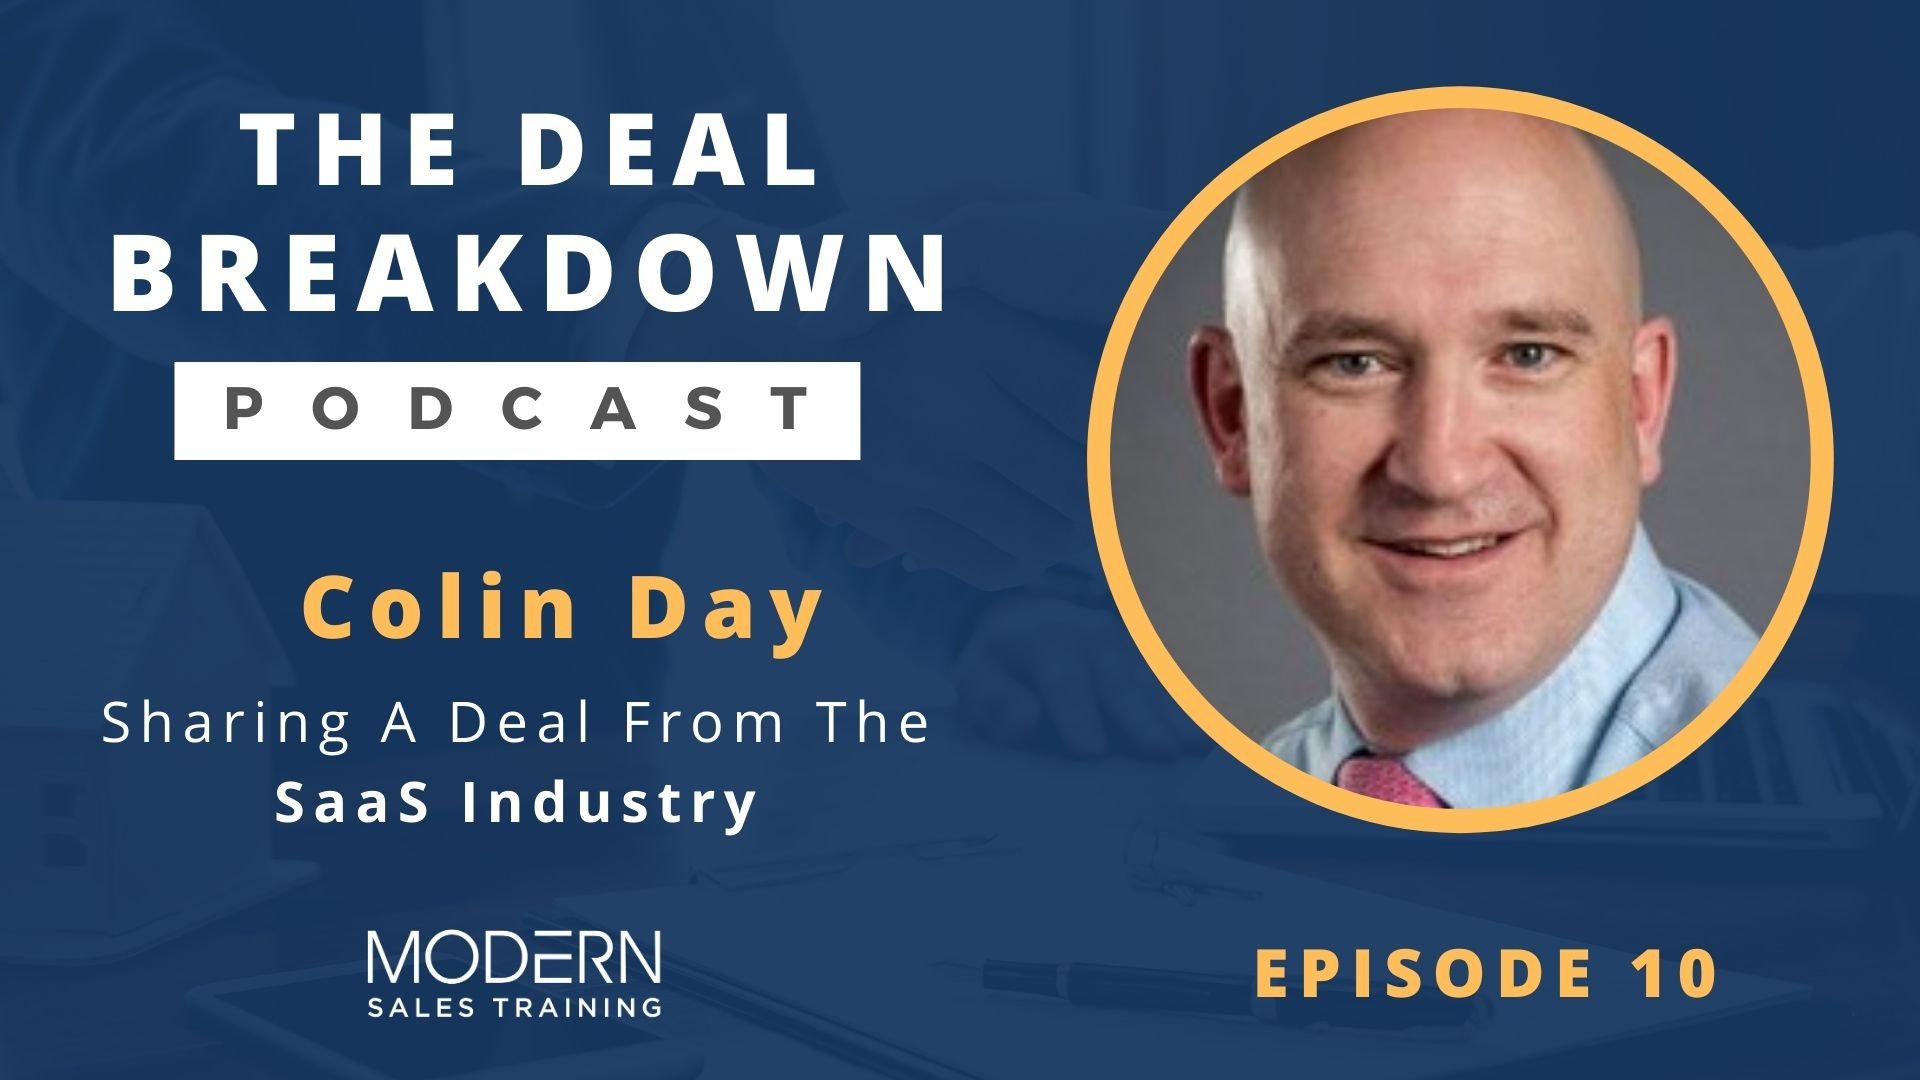 The-Deal-Breakdown-Podcast-Modern-Sales-Training-Colin-Day